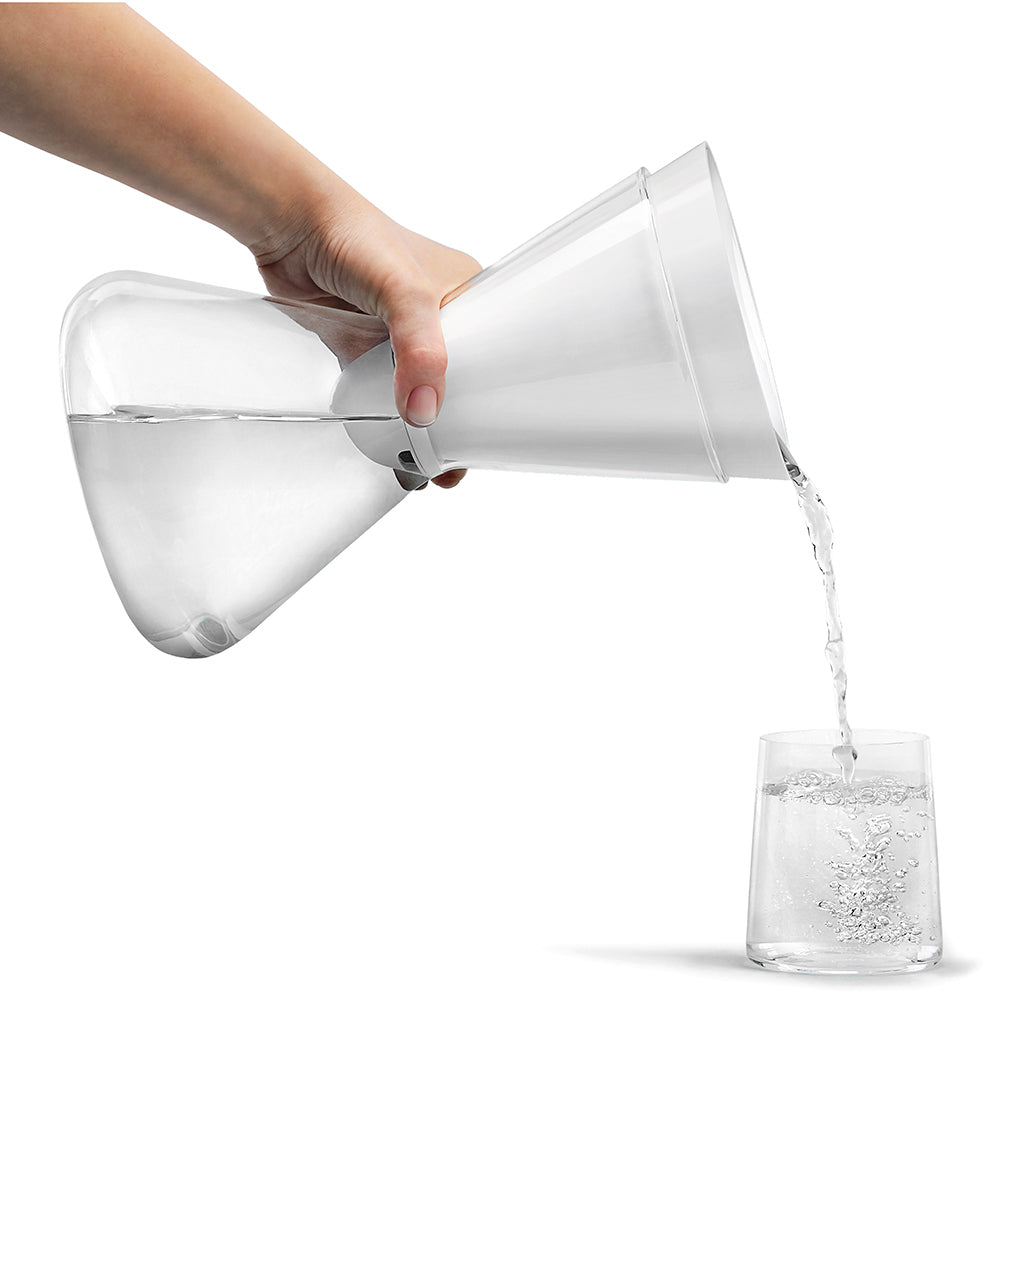 6 cup carafe with water